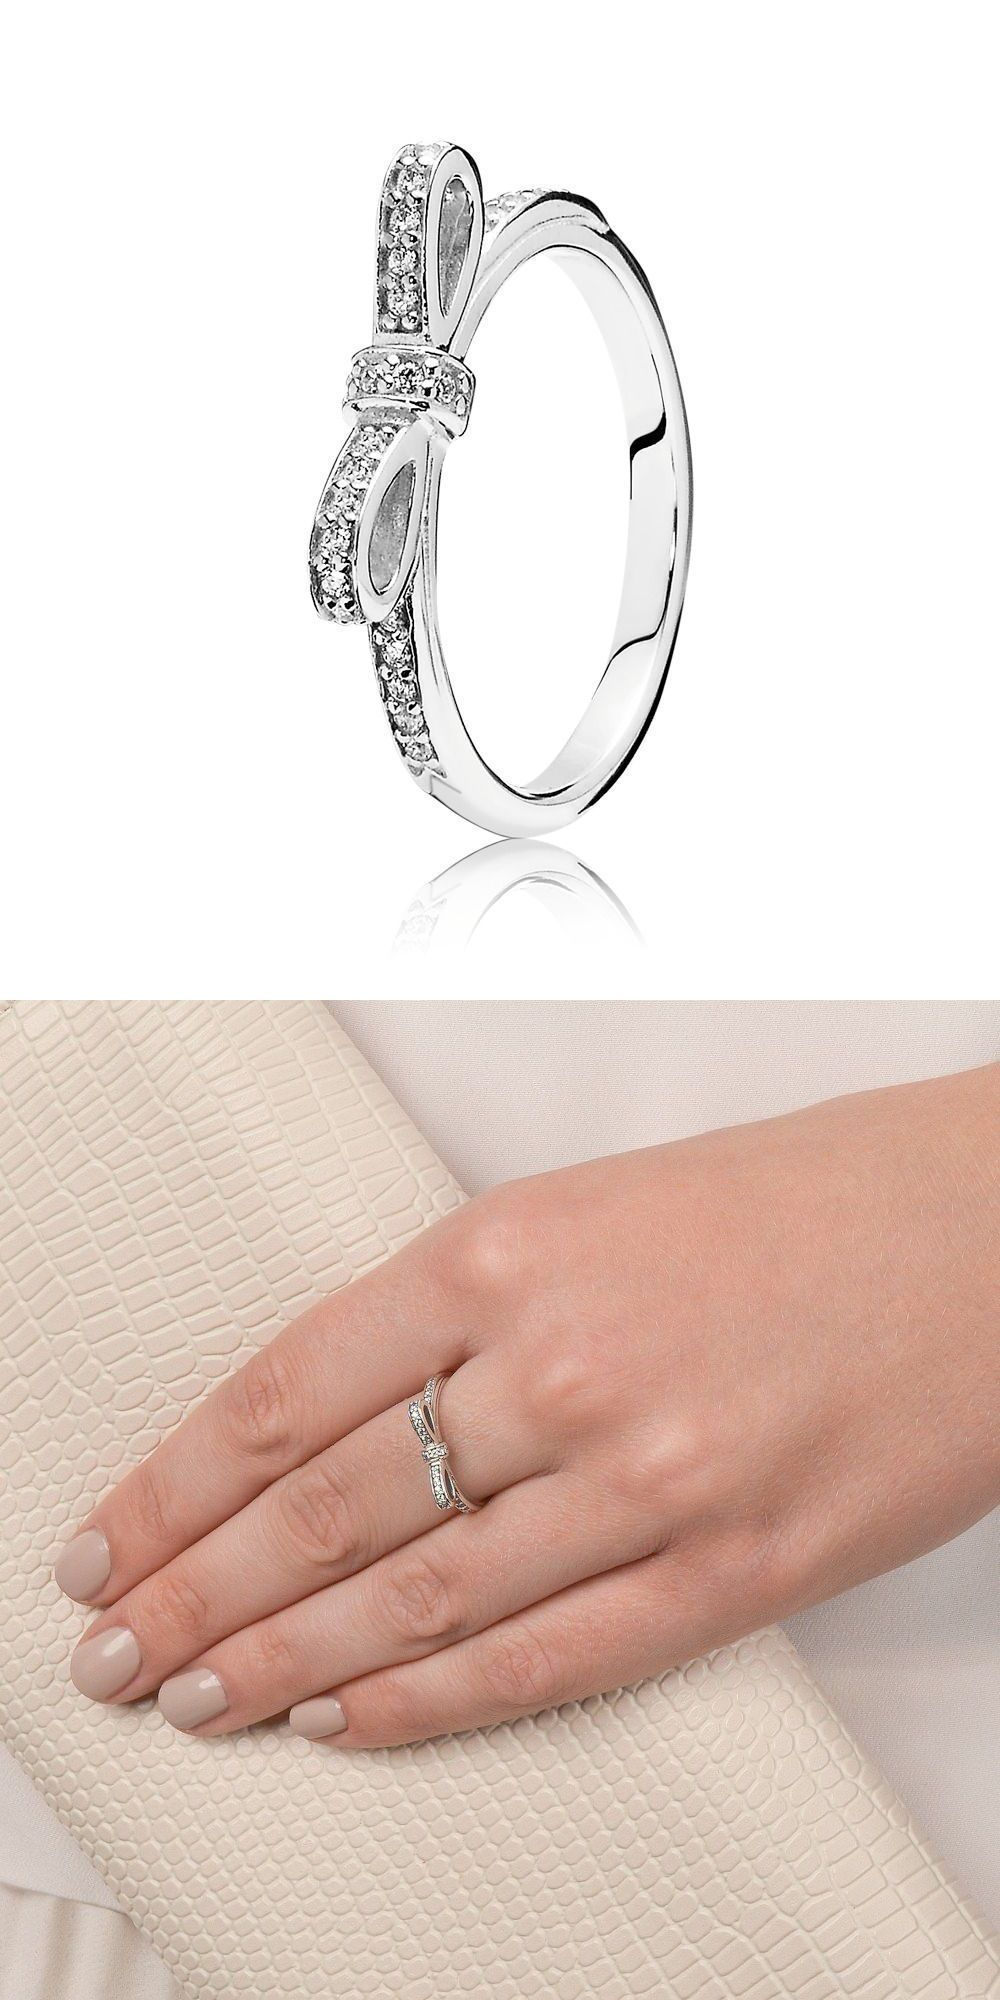 0b27f1522 ... Rings 67681 Authentic Pandora 925 Silver Sparkling Bow Stackable Ring  190906Cz Size 8.5 58 ...